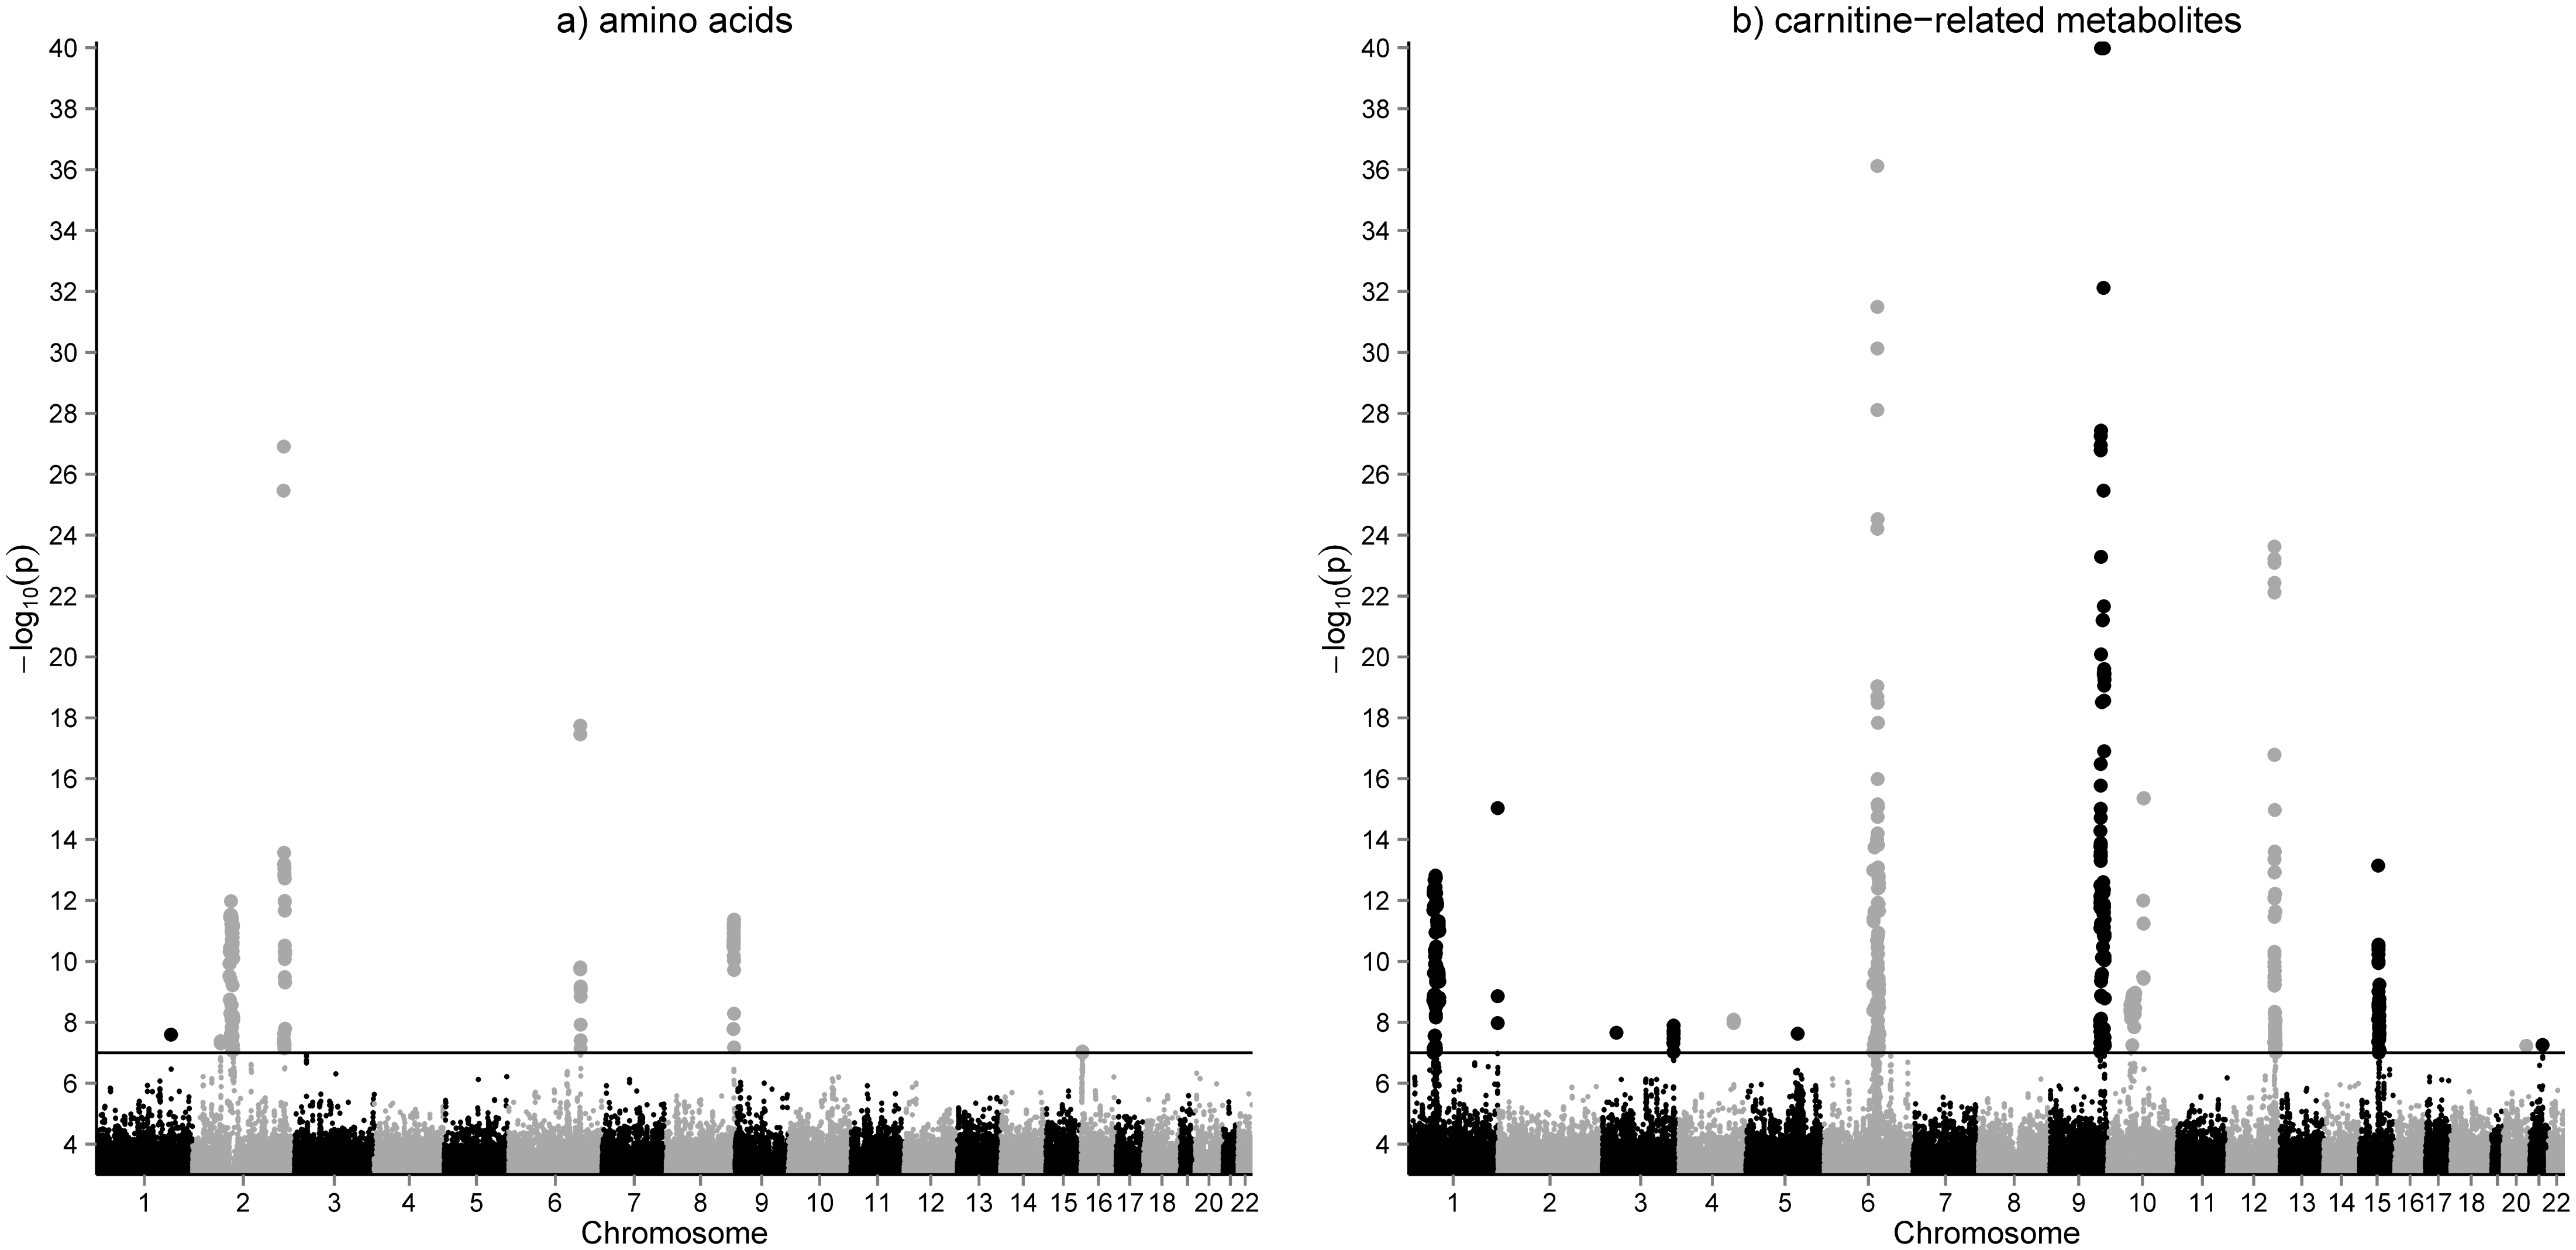 GWAS results for amino acids (a) and acylcarnitines (b) in whole blood.